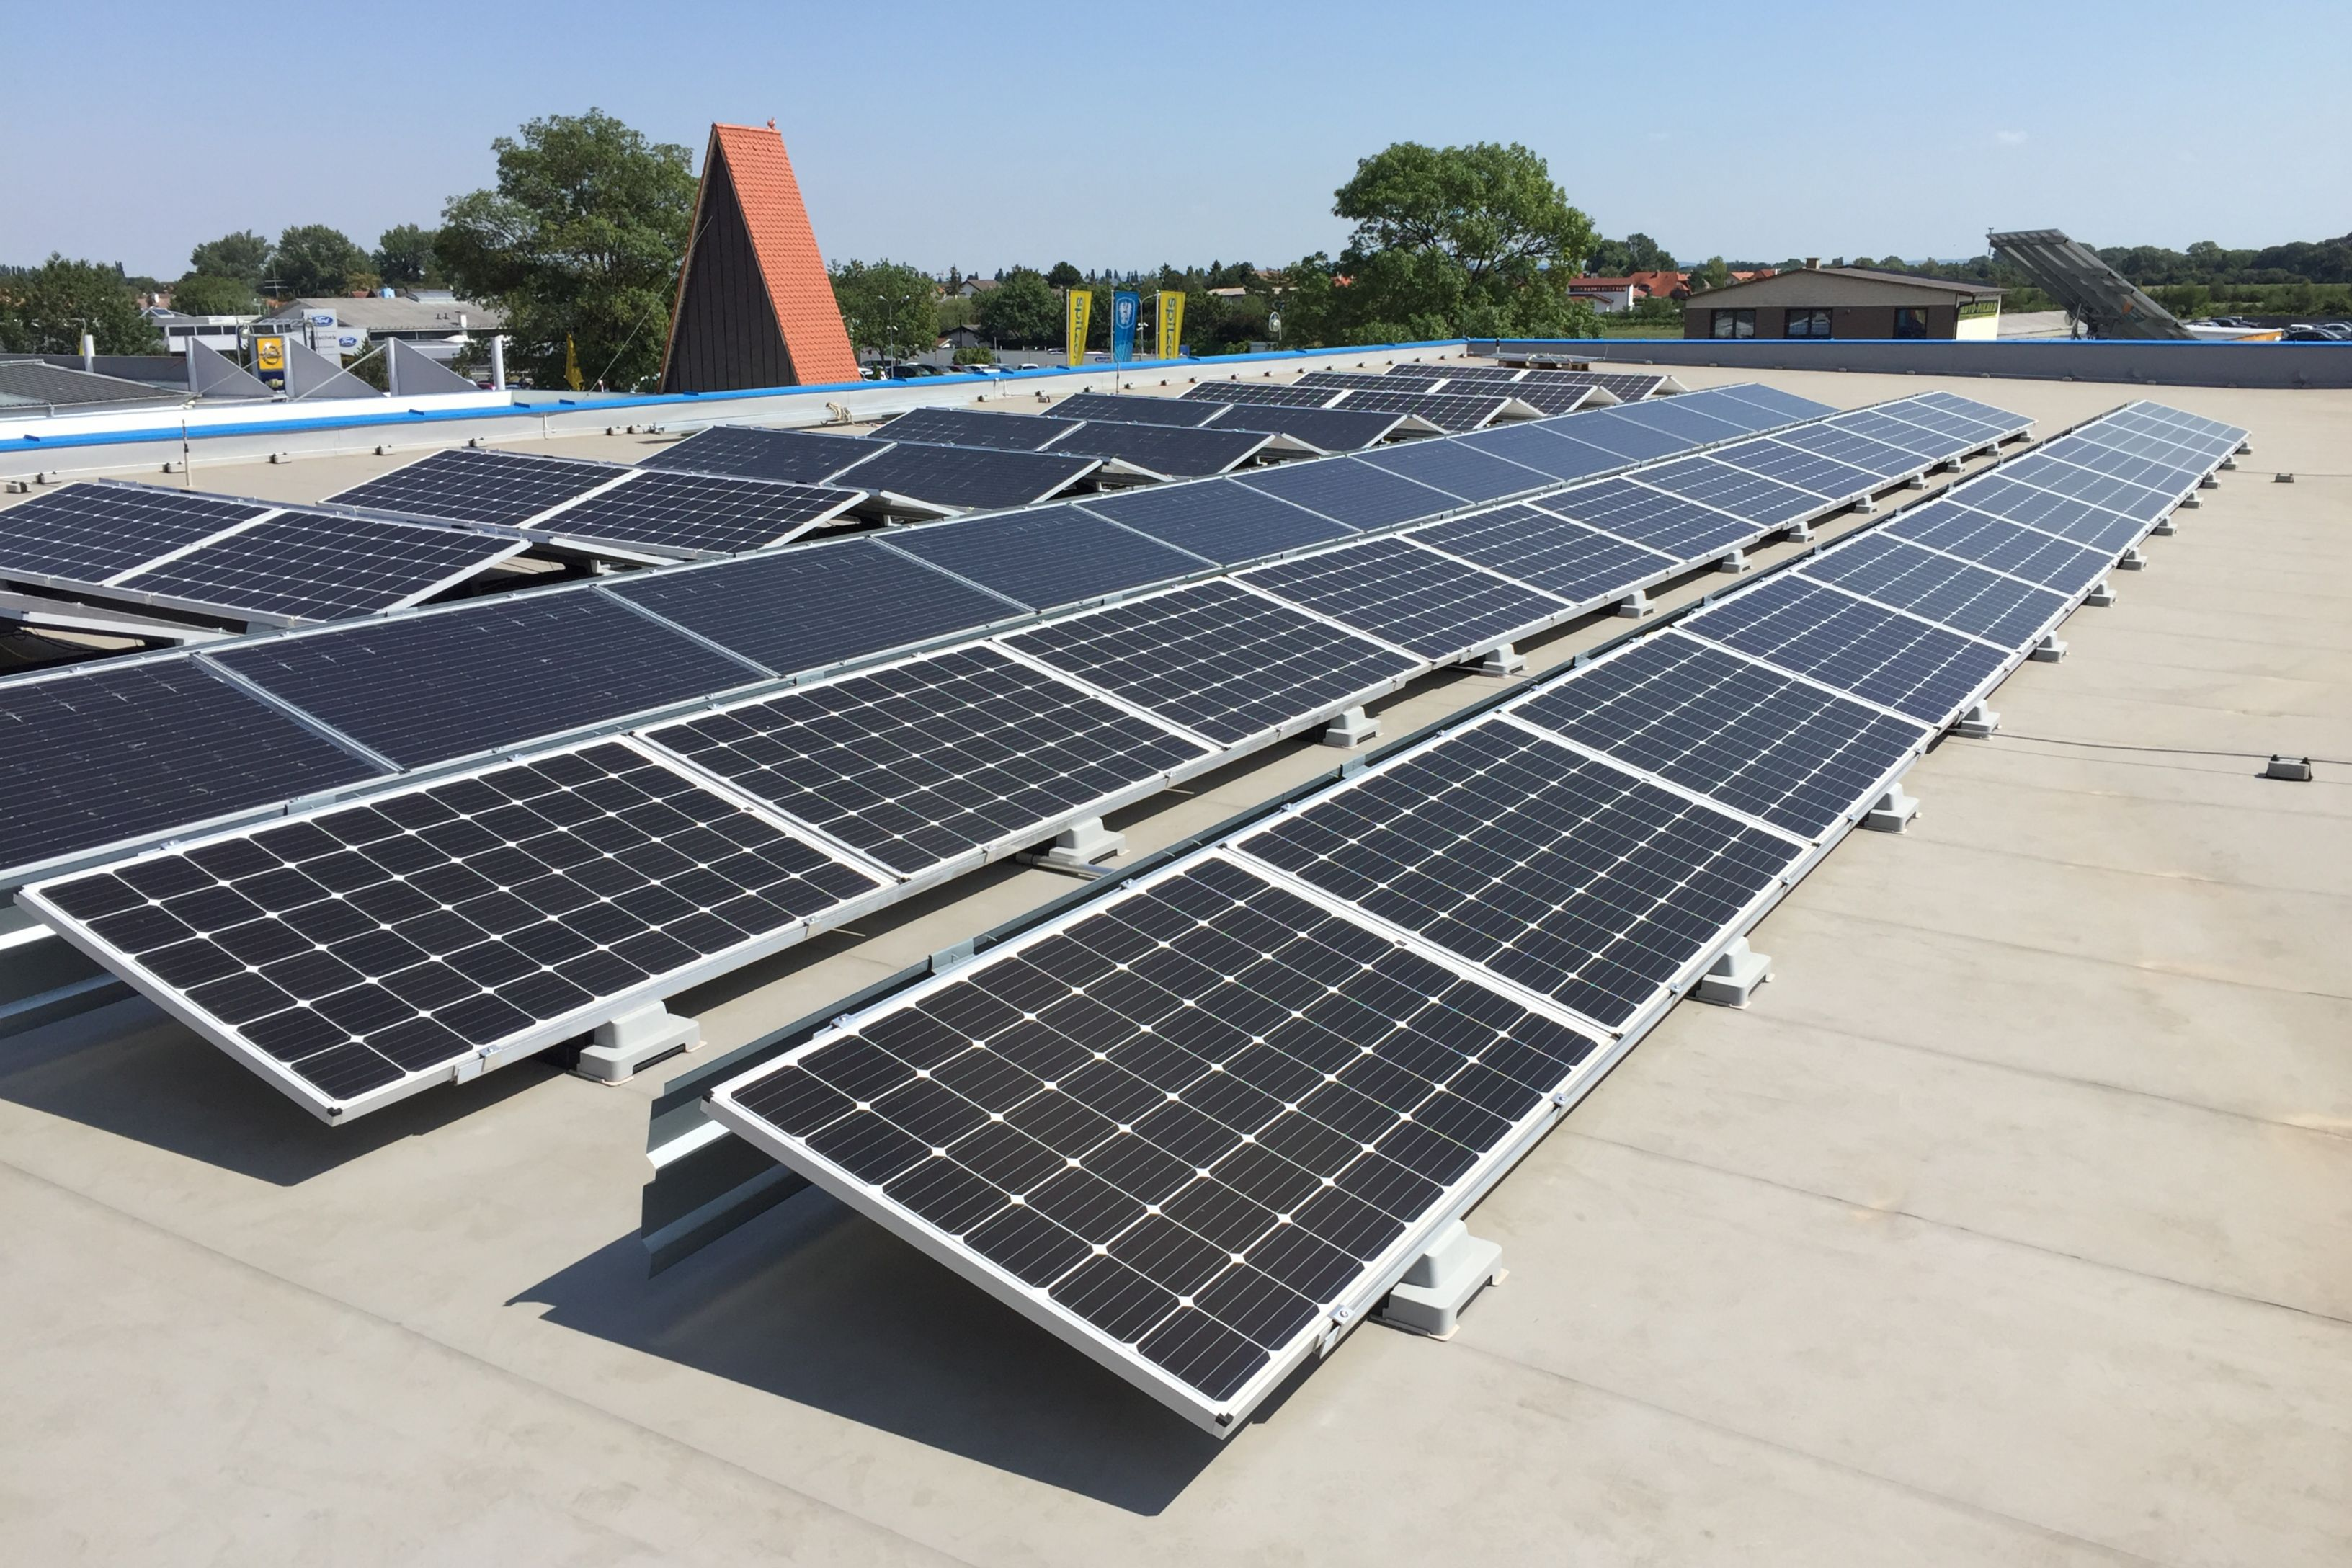 Sika SolarMount-1 on solar roof installed in south configuration in Oeynhausen, Germany